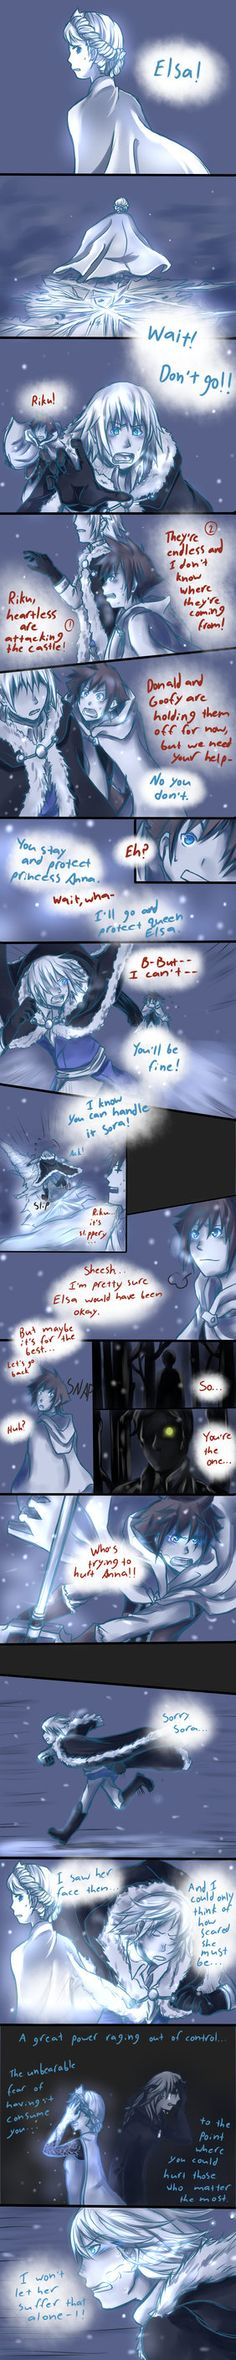 Frozen/KH: To Protect by Medli45 on DeviantArt